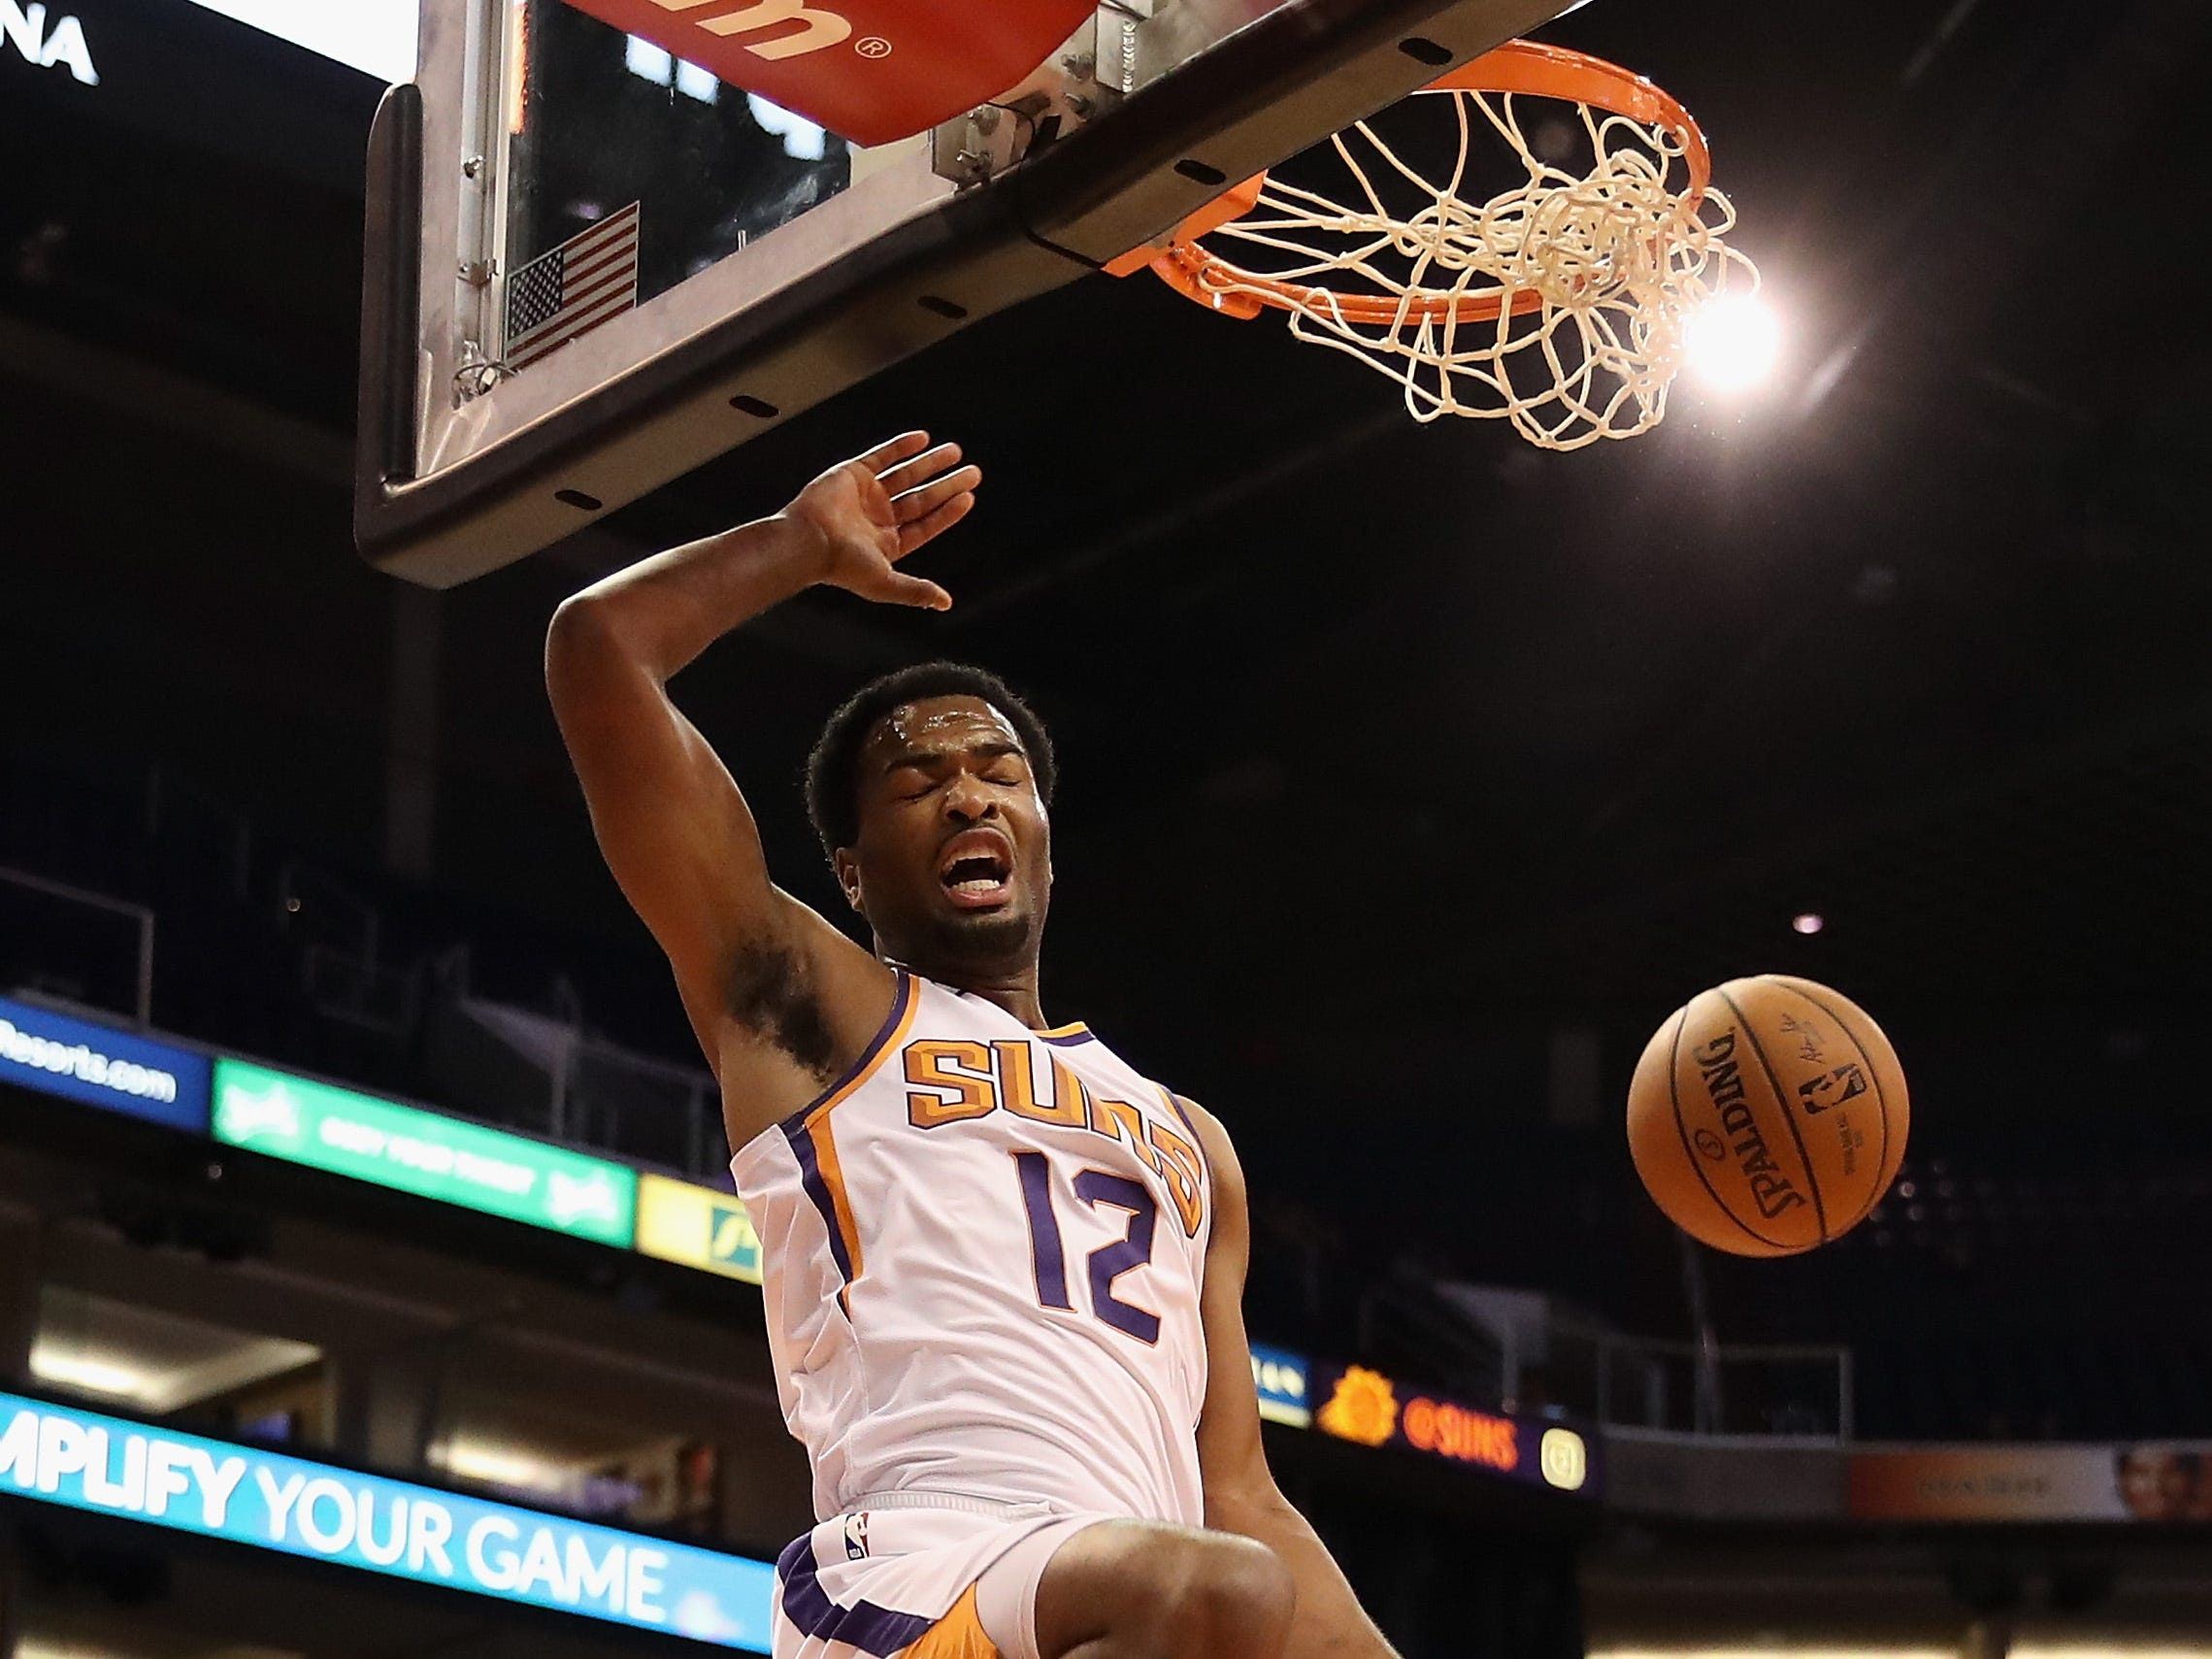 PHOENIX, AZ - OCTOBER 03:  TJ Warren #12 of the Phoenix Suns slam dunks the ball during the first half of the NBA game against the New Zealand Breakers at Talking Stick Resort Arena on October 3, 2018 in Phoenix, Arizona.  NOTE TO USER: User expressly acknowledges and agrees that, by downloading and or using this photograph, User is consenting to the terms and conditions of the Getty Images License Agreement.  (Photo by Christian Petersen/Getty Images)